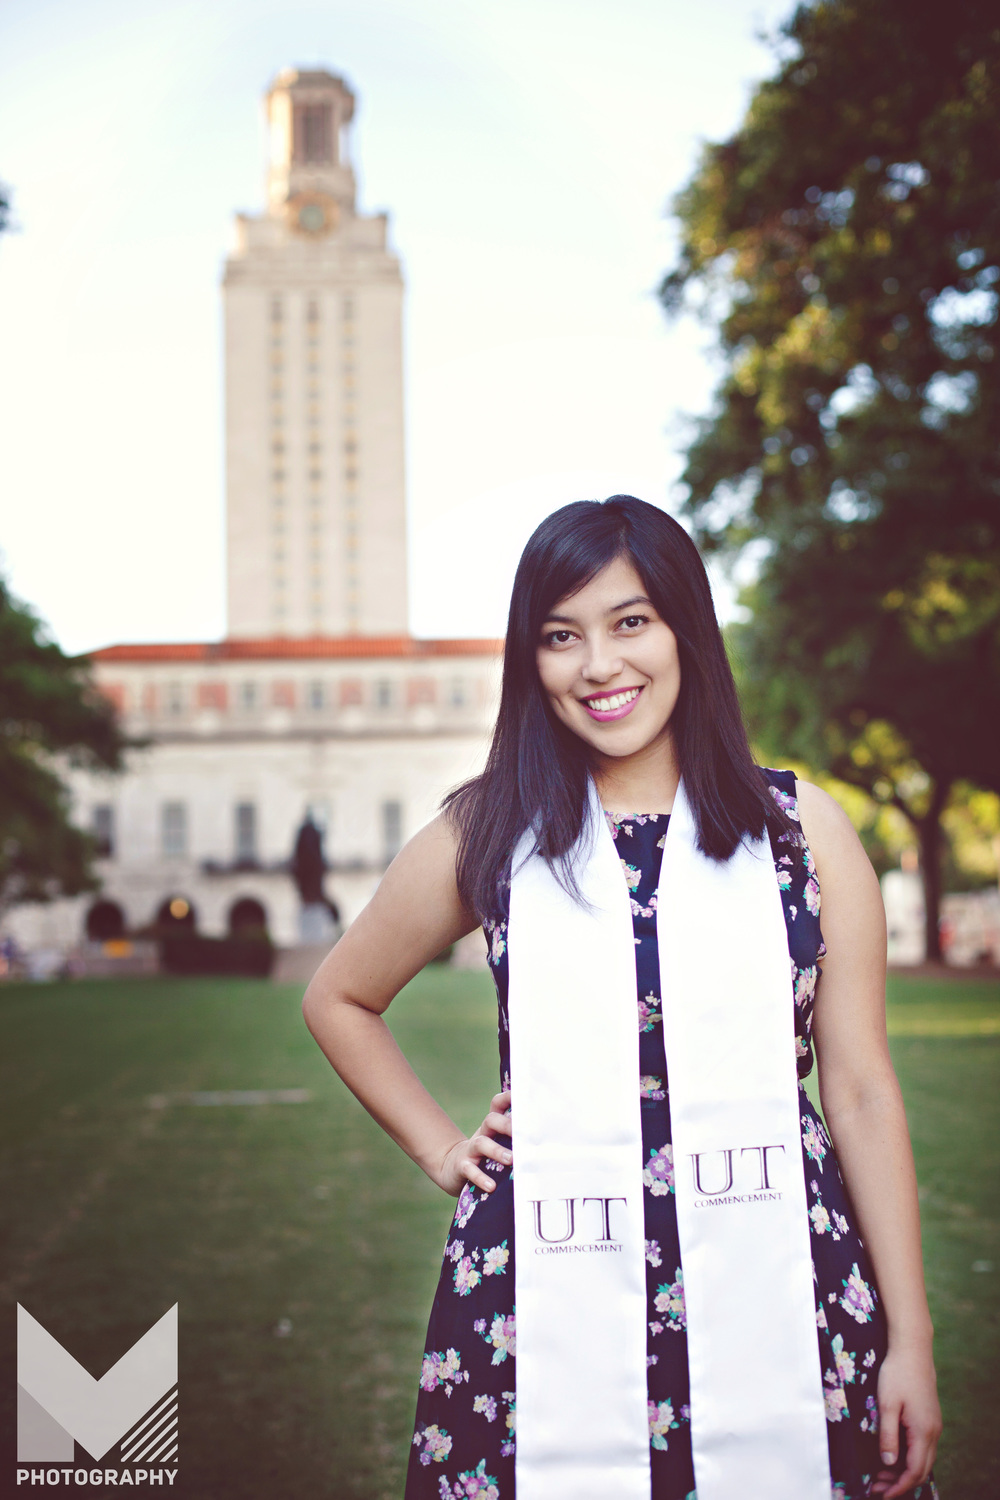 Arleen Lopez UT Tower Senior Portrait.jpg